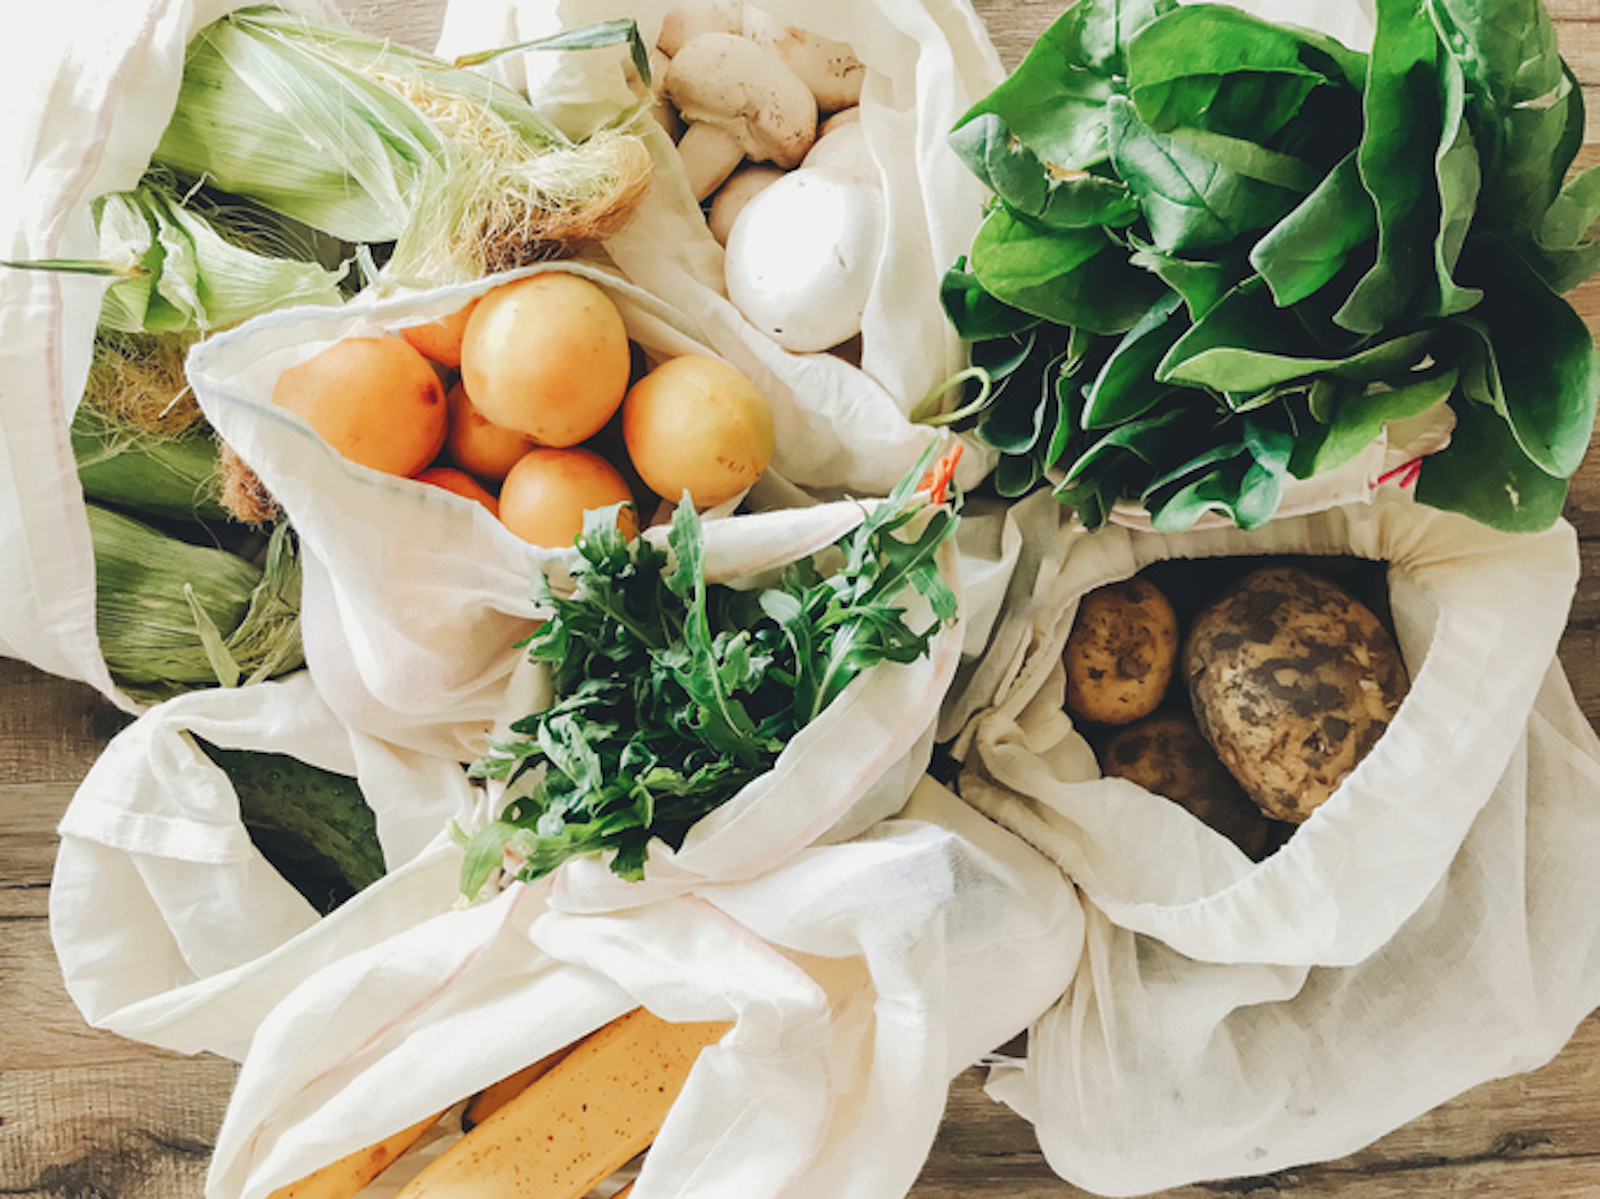 fresh-vegetables-in-eco-cotton-bags-on-table-in-the-kitchen-lettuce-corn-potatoes-apricots-bananas-r